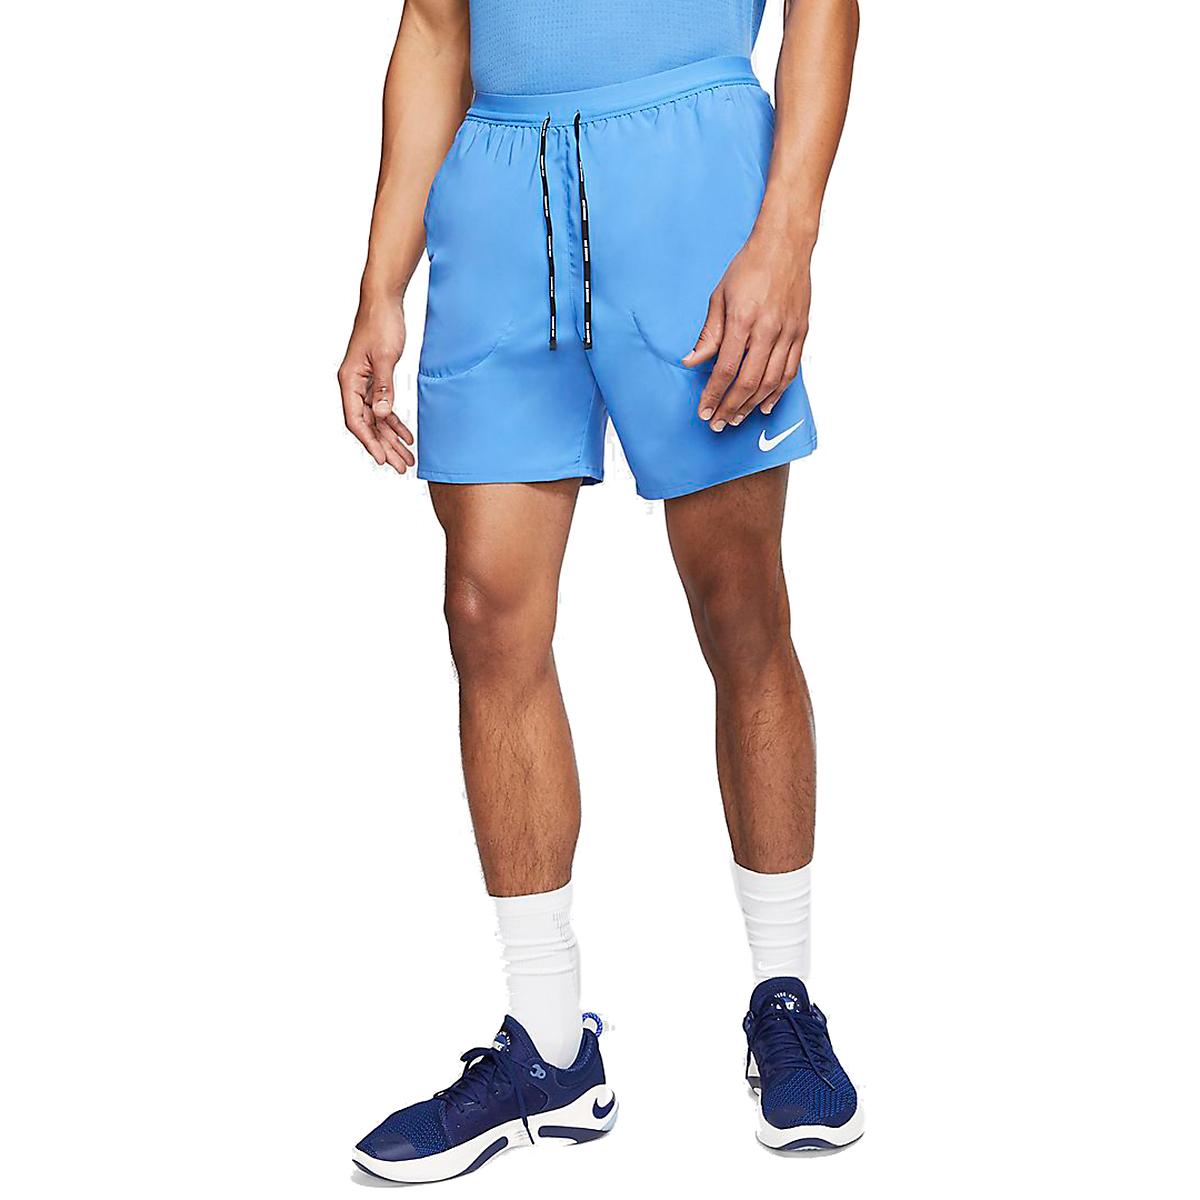 Men's Nike Flex Stride 7 Inch 2-in-1 Short  - Color: Pacific Blue - Size: M, Pacific Blue, large, image 1